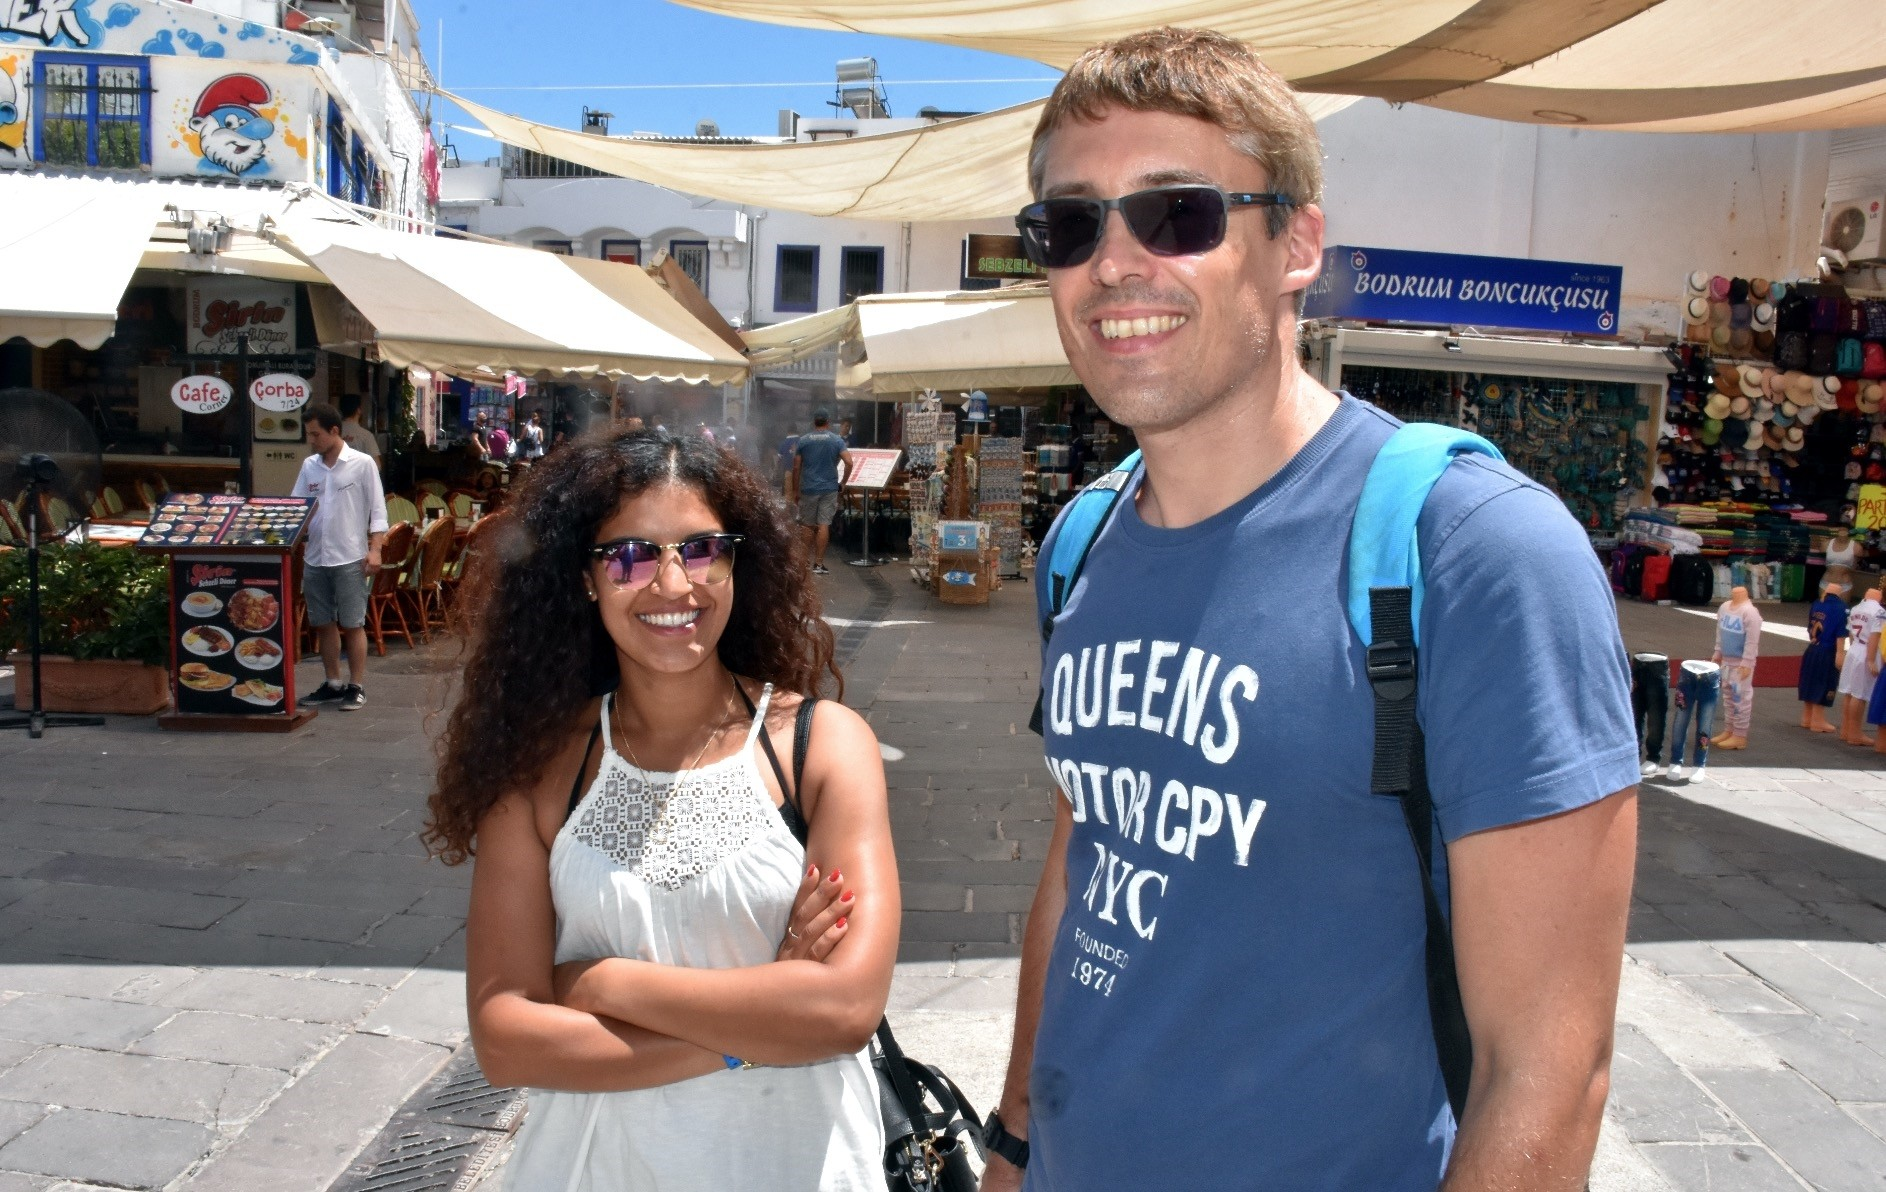 Tim Mu00fchler (R), from Germany, said it was his first time visiting Muu011flau2019s Bodrum district.